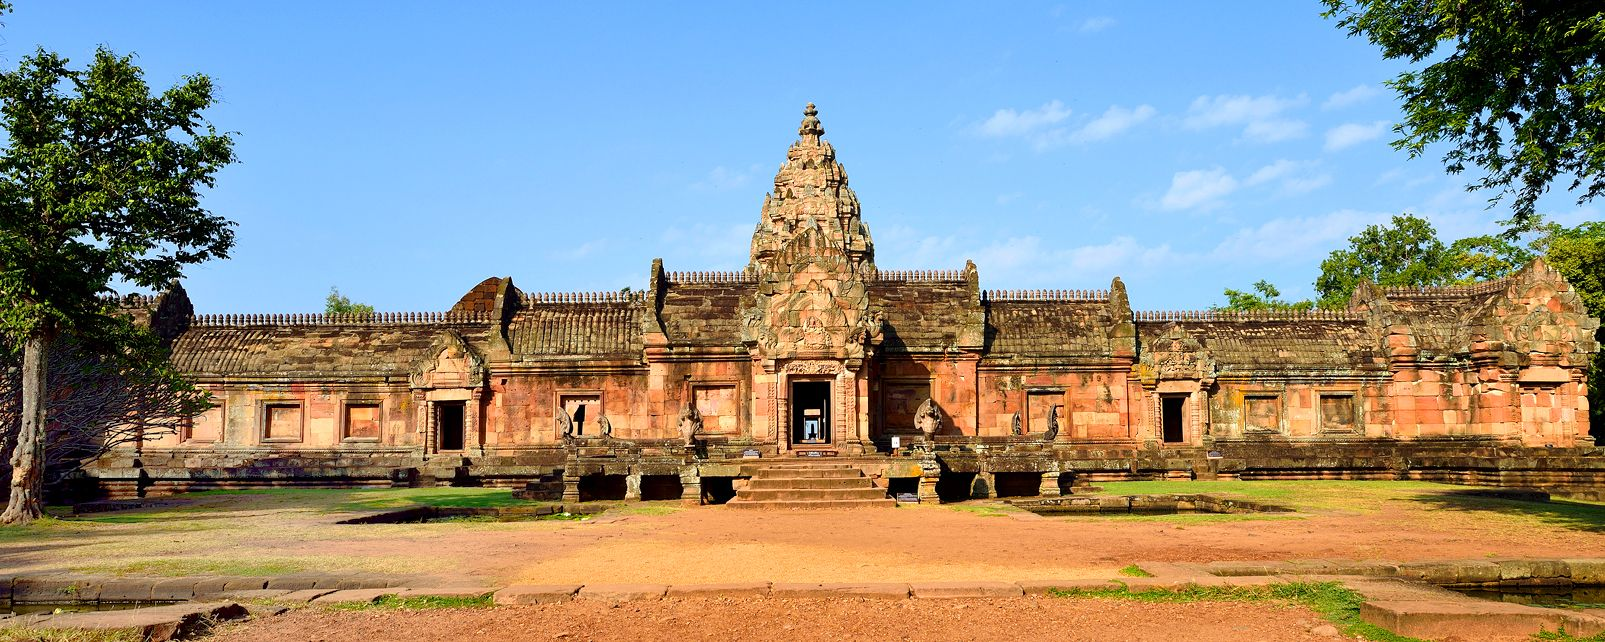 Les monuments, Wat, Statue, Sculpture, Archaeology, Buddha, Hinduism, Buddhism, Backgrounds, Thailand, History, Famous Place, Architecture, Tourist, Laos, Bagan, Asia, Church, Palace, Luang, prabang